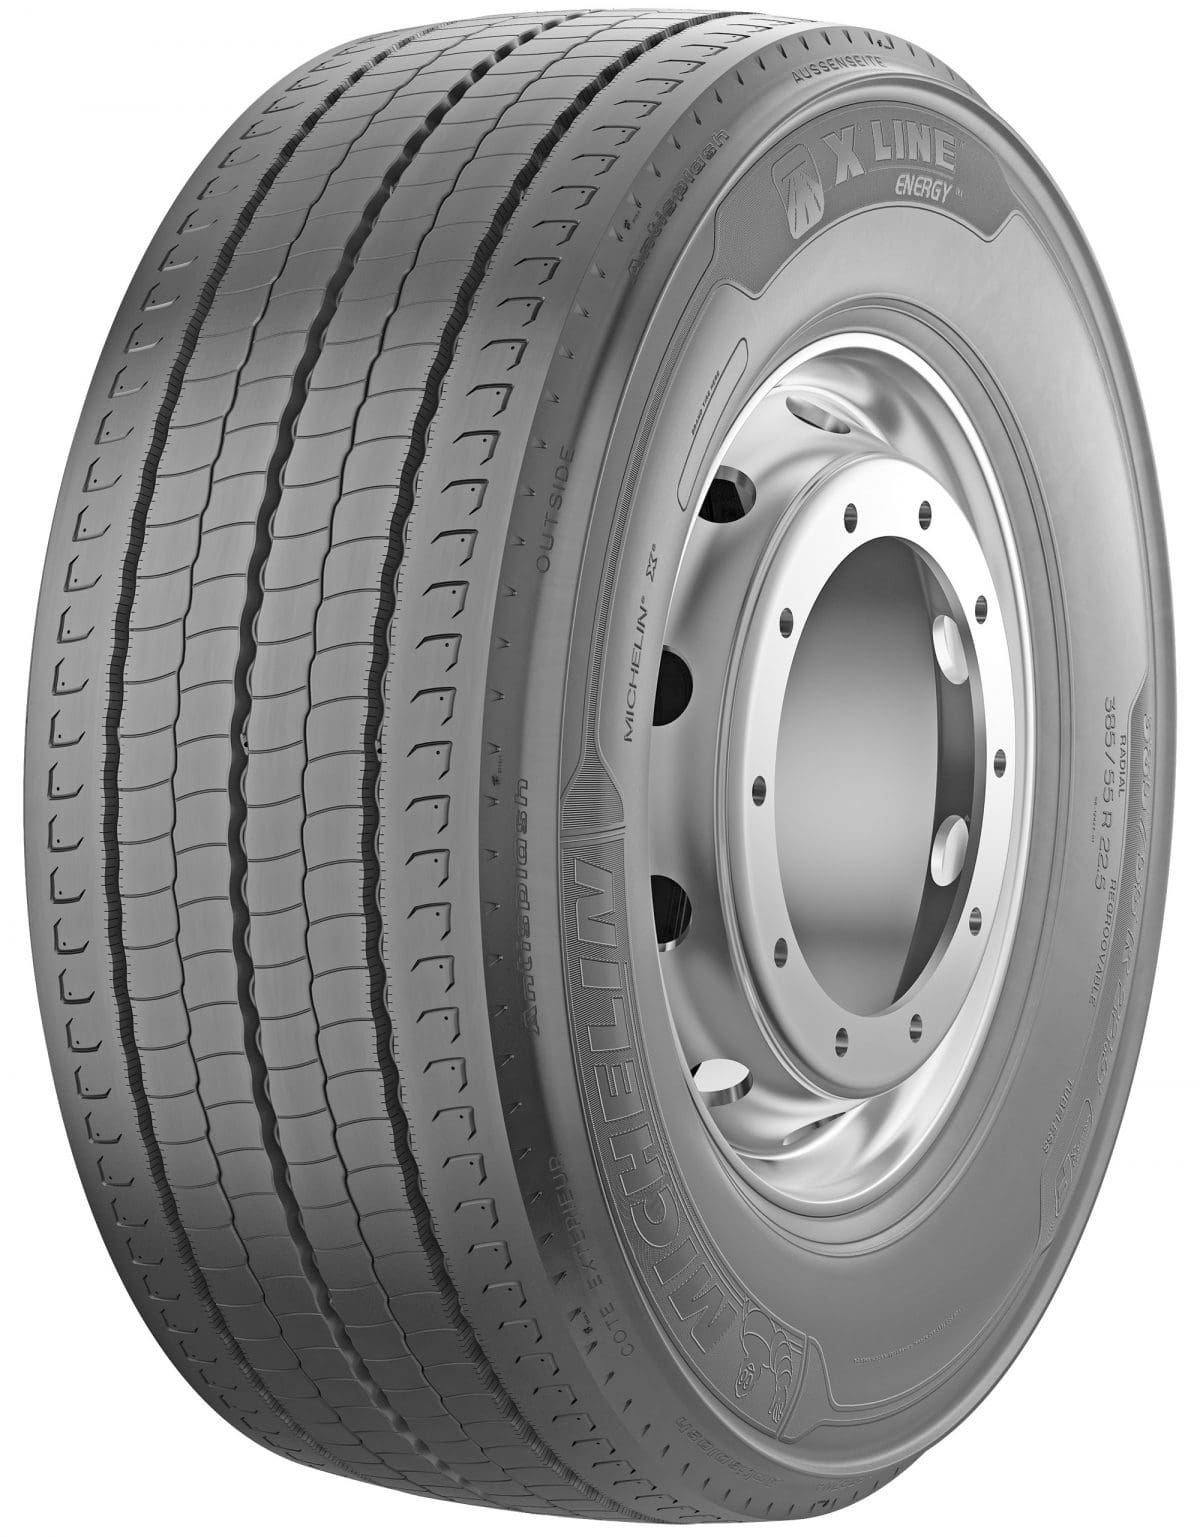 Грузовая шина Michelin X Line Energy F 385/55R22.5